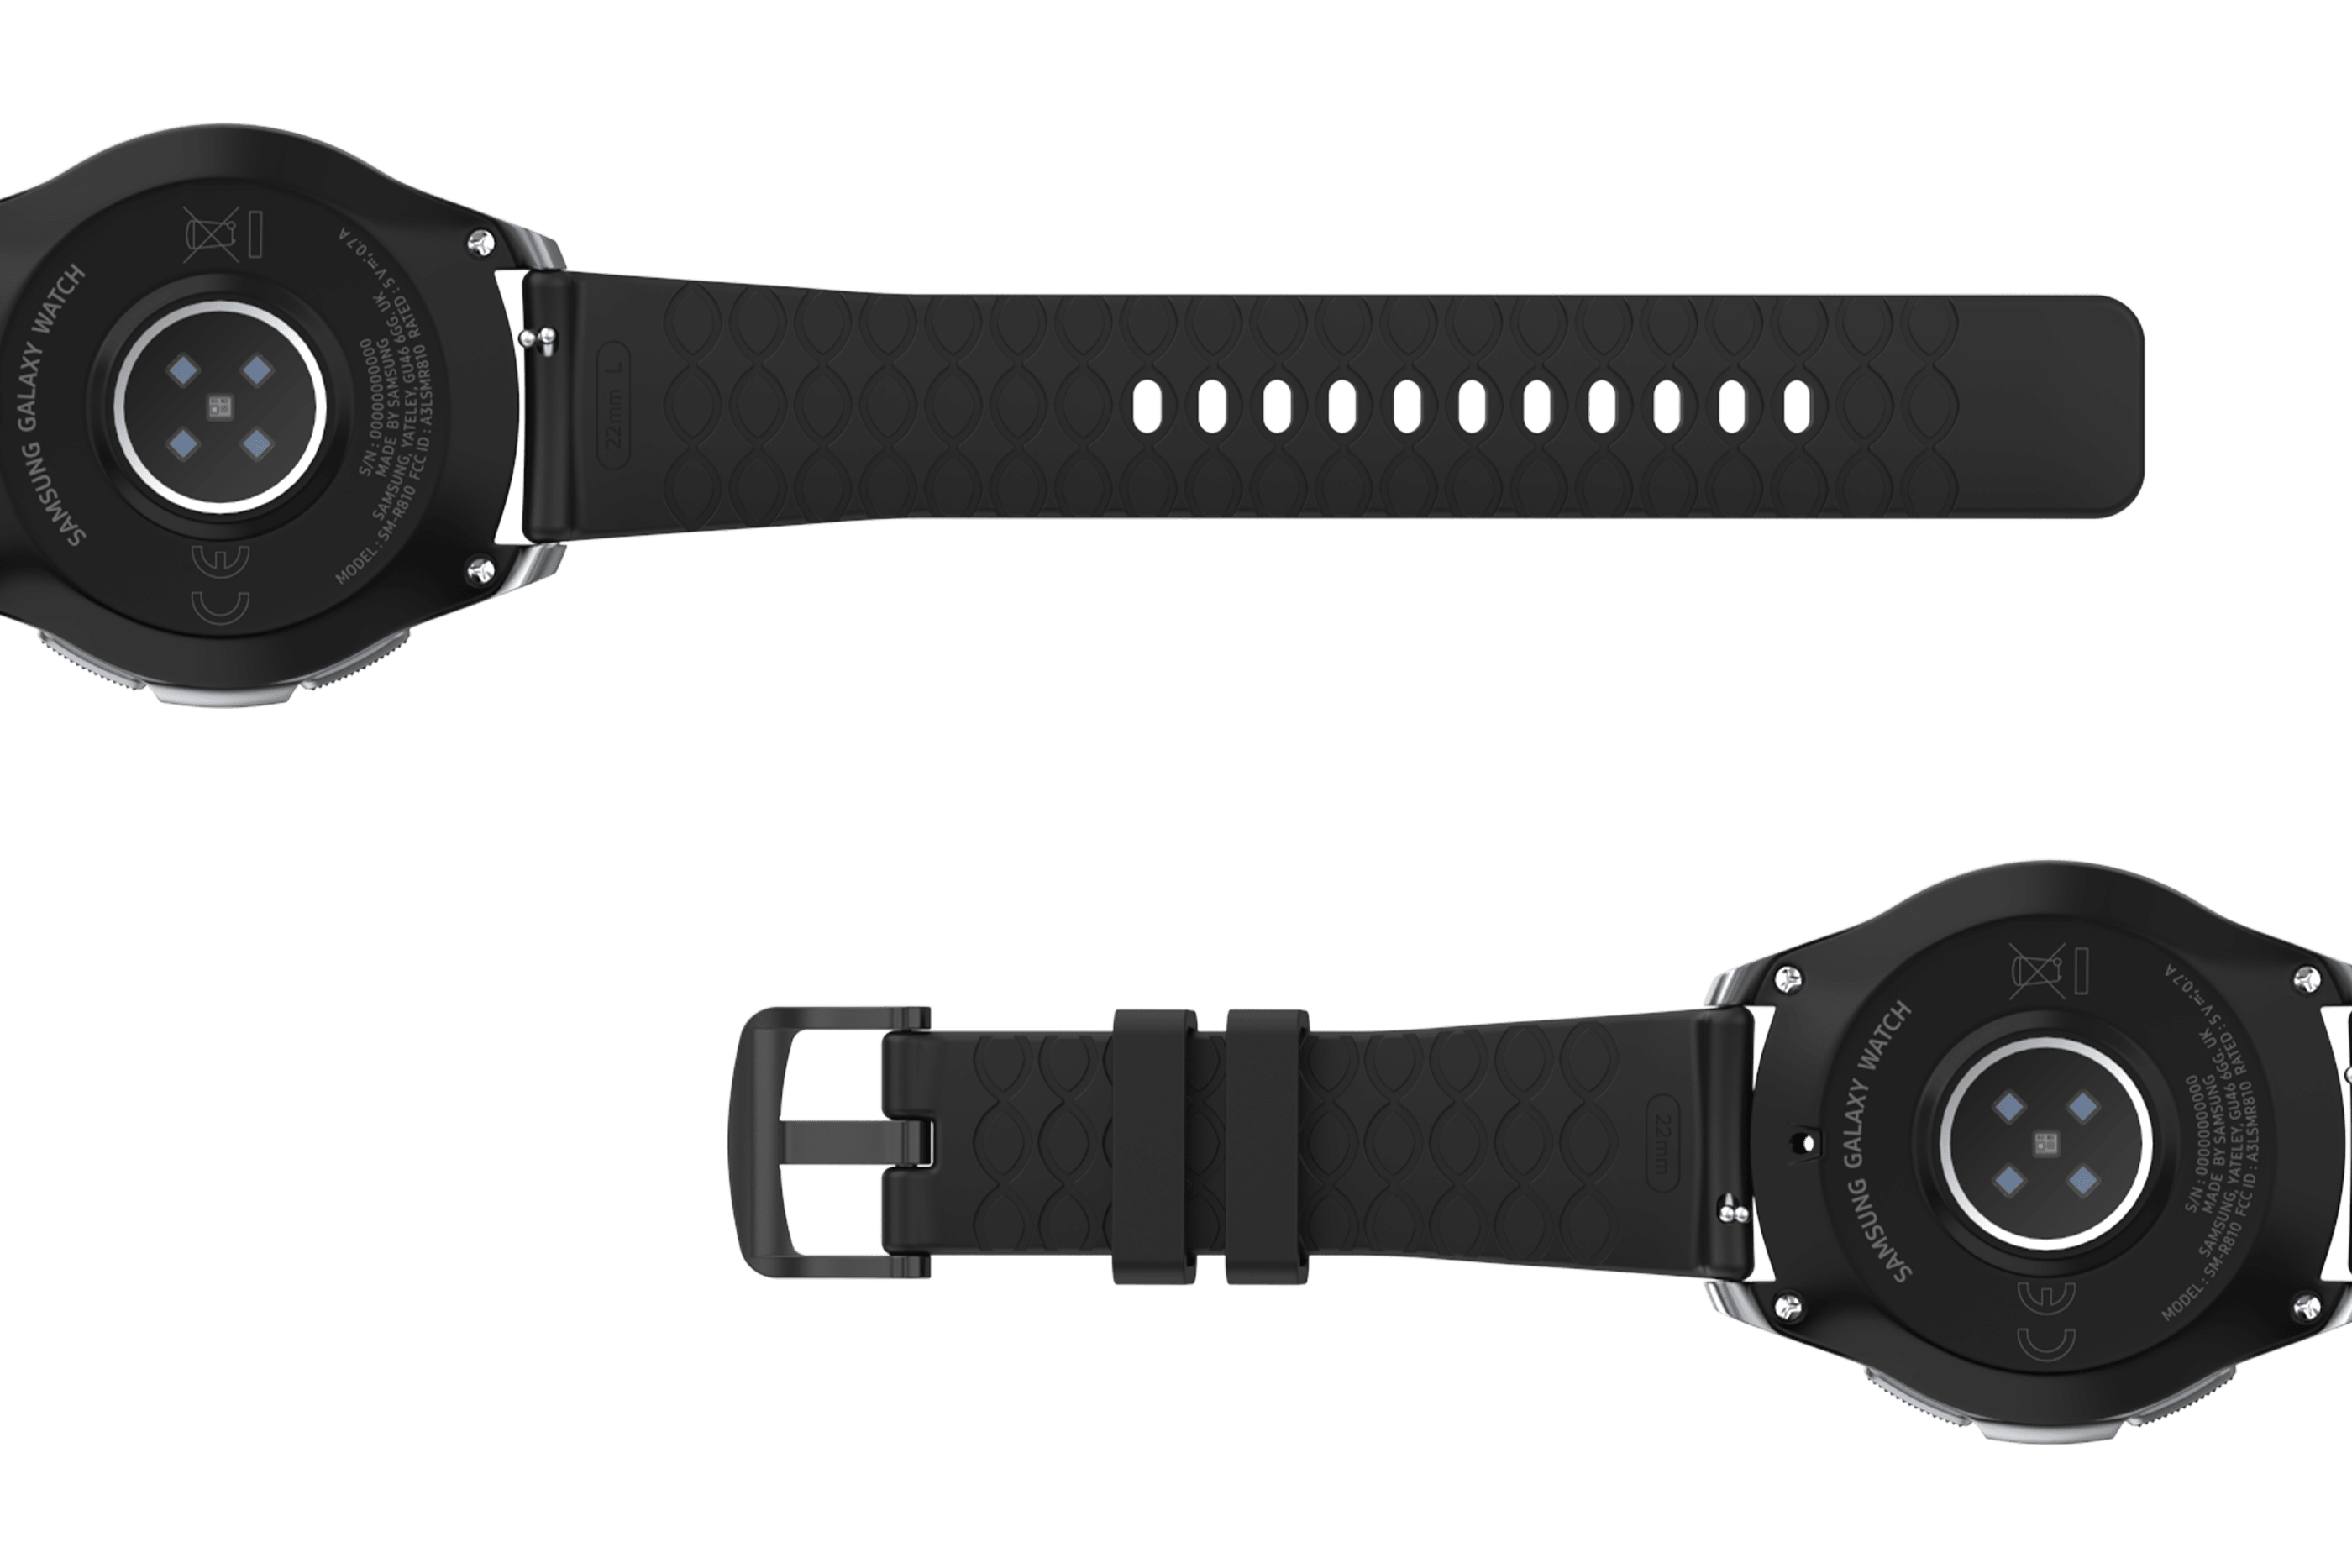 Solid Black 22mm  watch band viewed bottom up